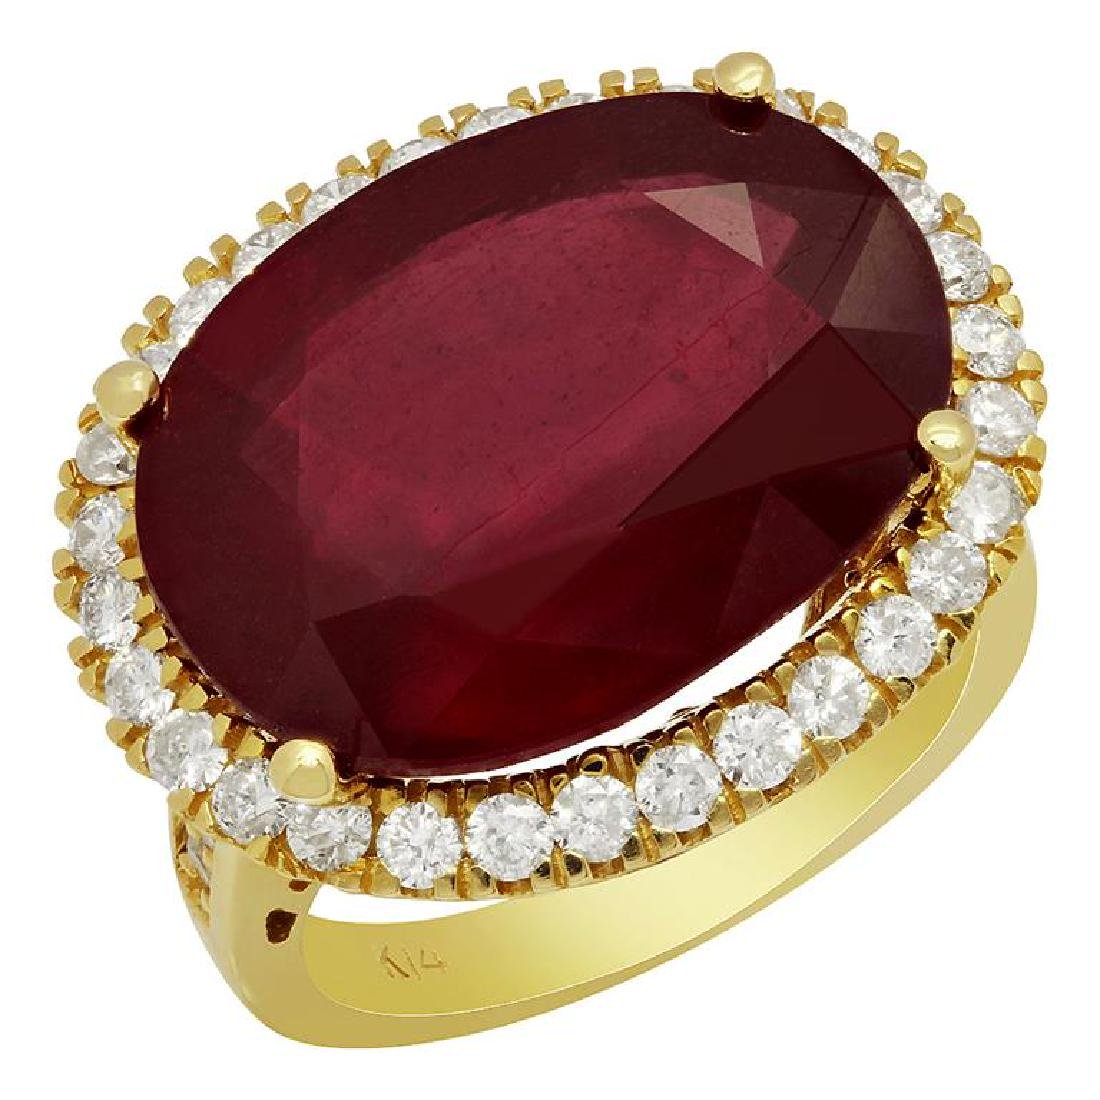 14k Yellow Gold 18.24ct Ruby 1.11ct Diamond Ring